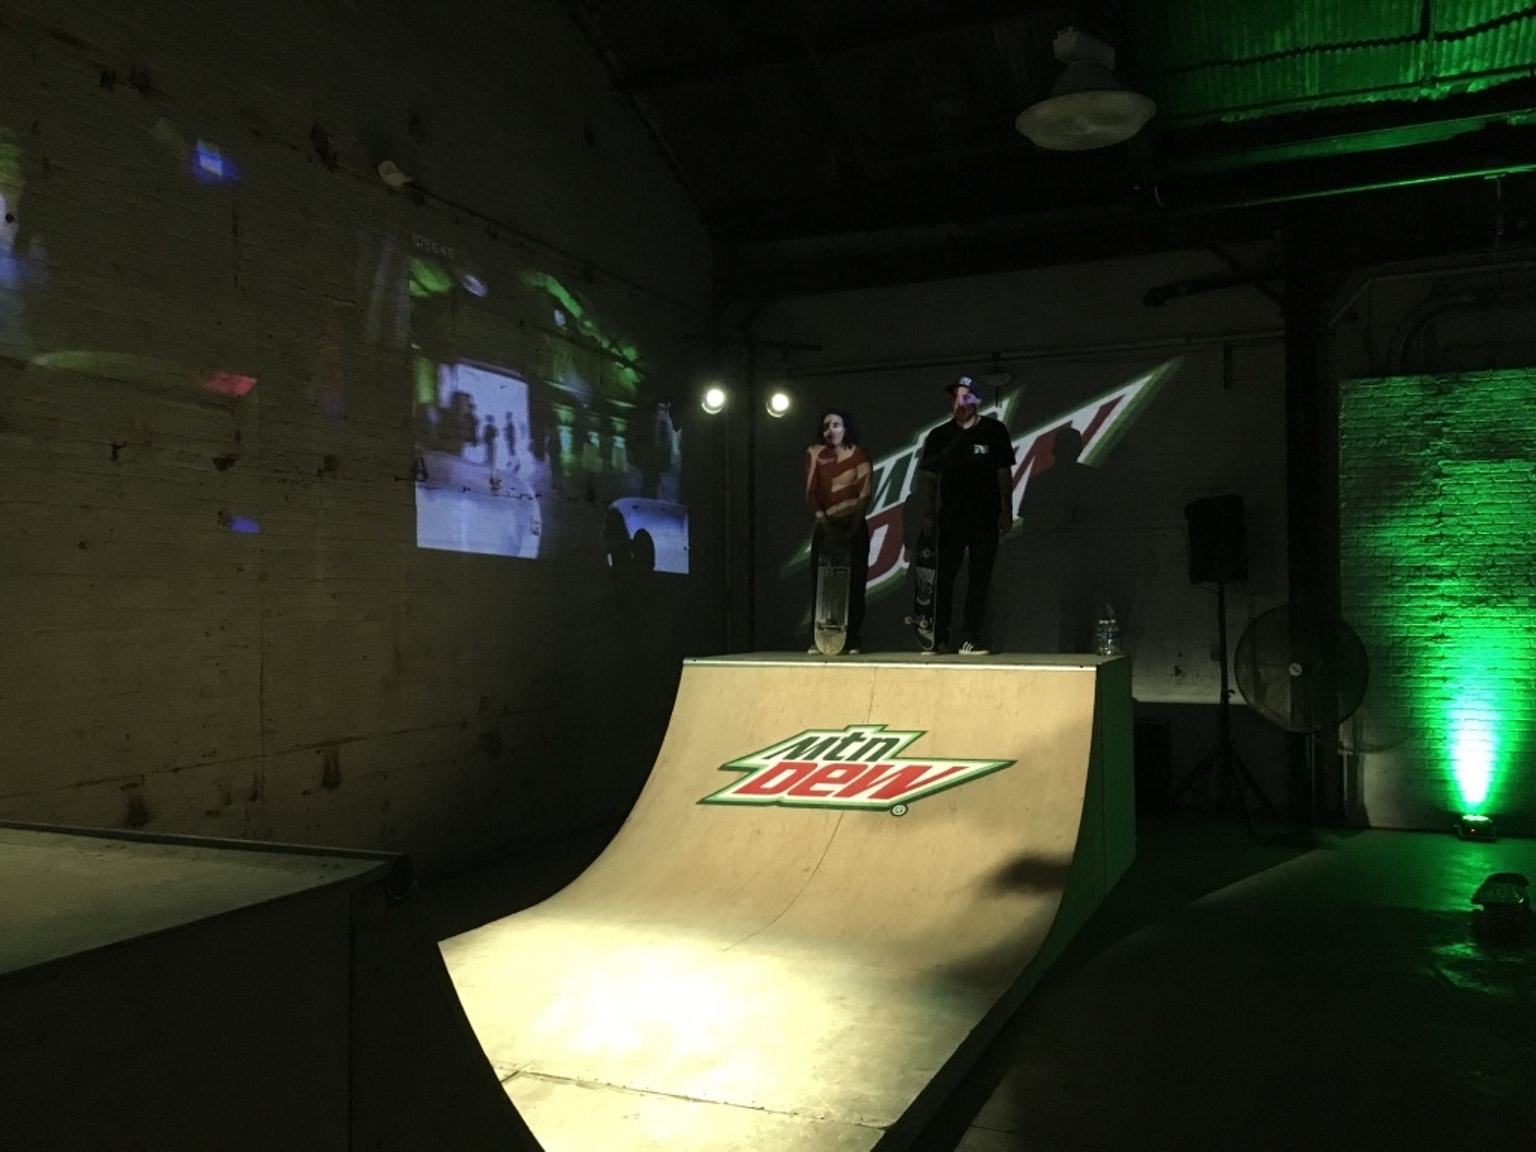 Nothing says Dew, drones, and skating like exposed brick.